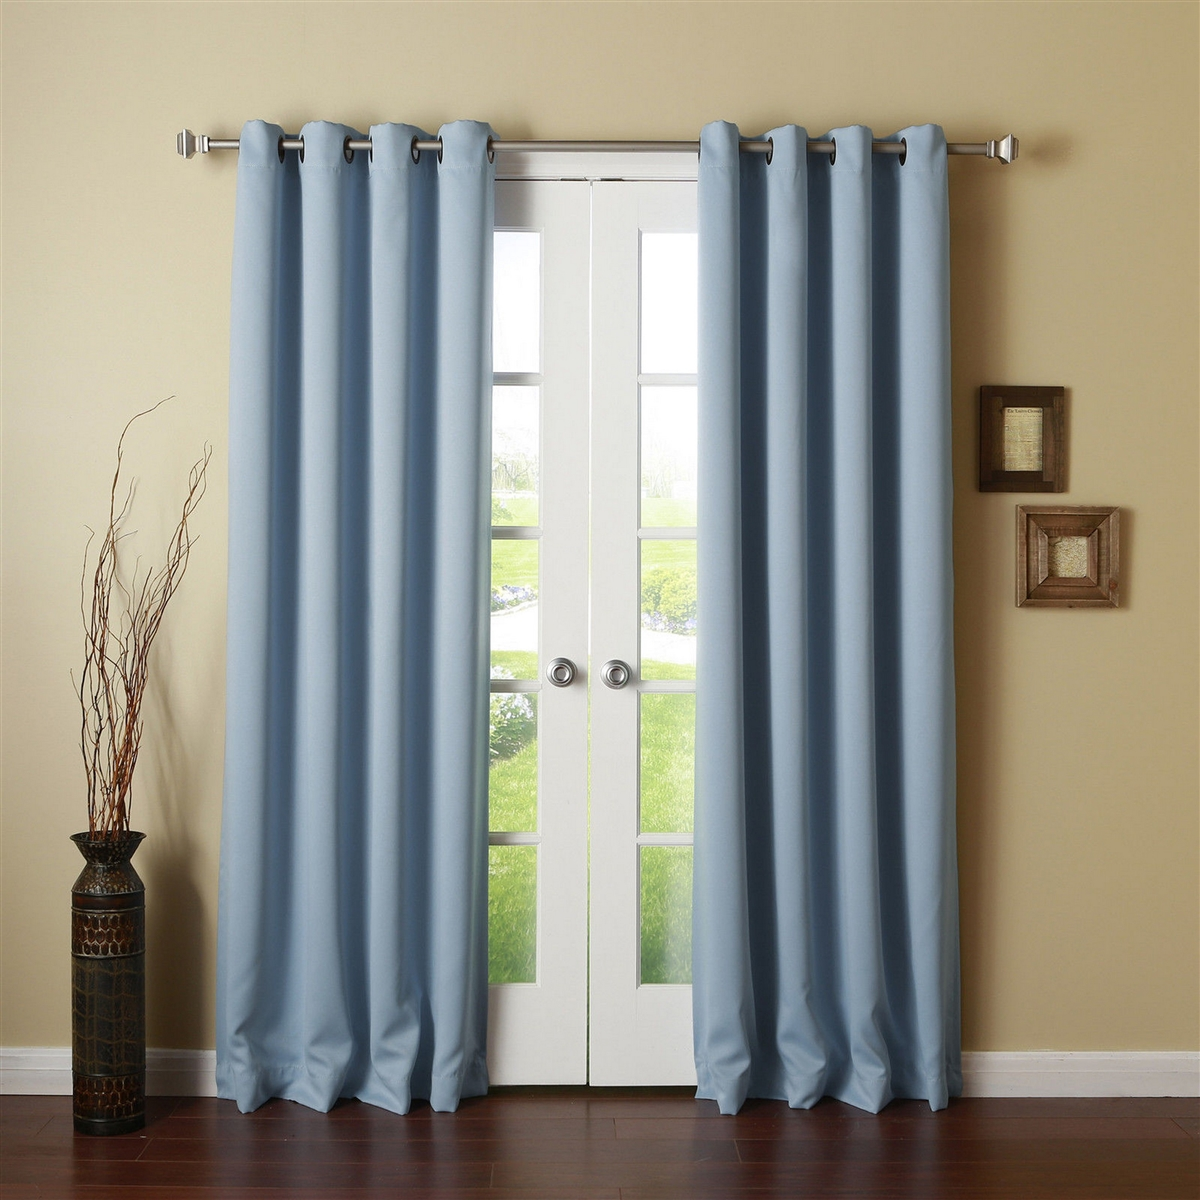 Thermal Backed Drapes | Thermal Curtains Grommet | Thermal Insulated Curtains